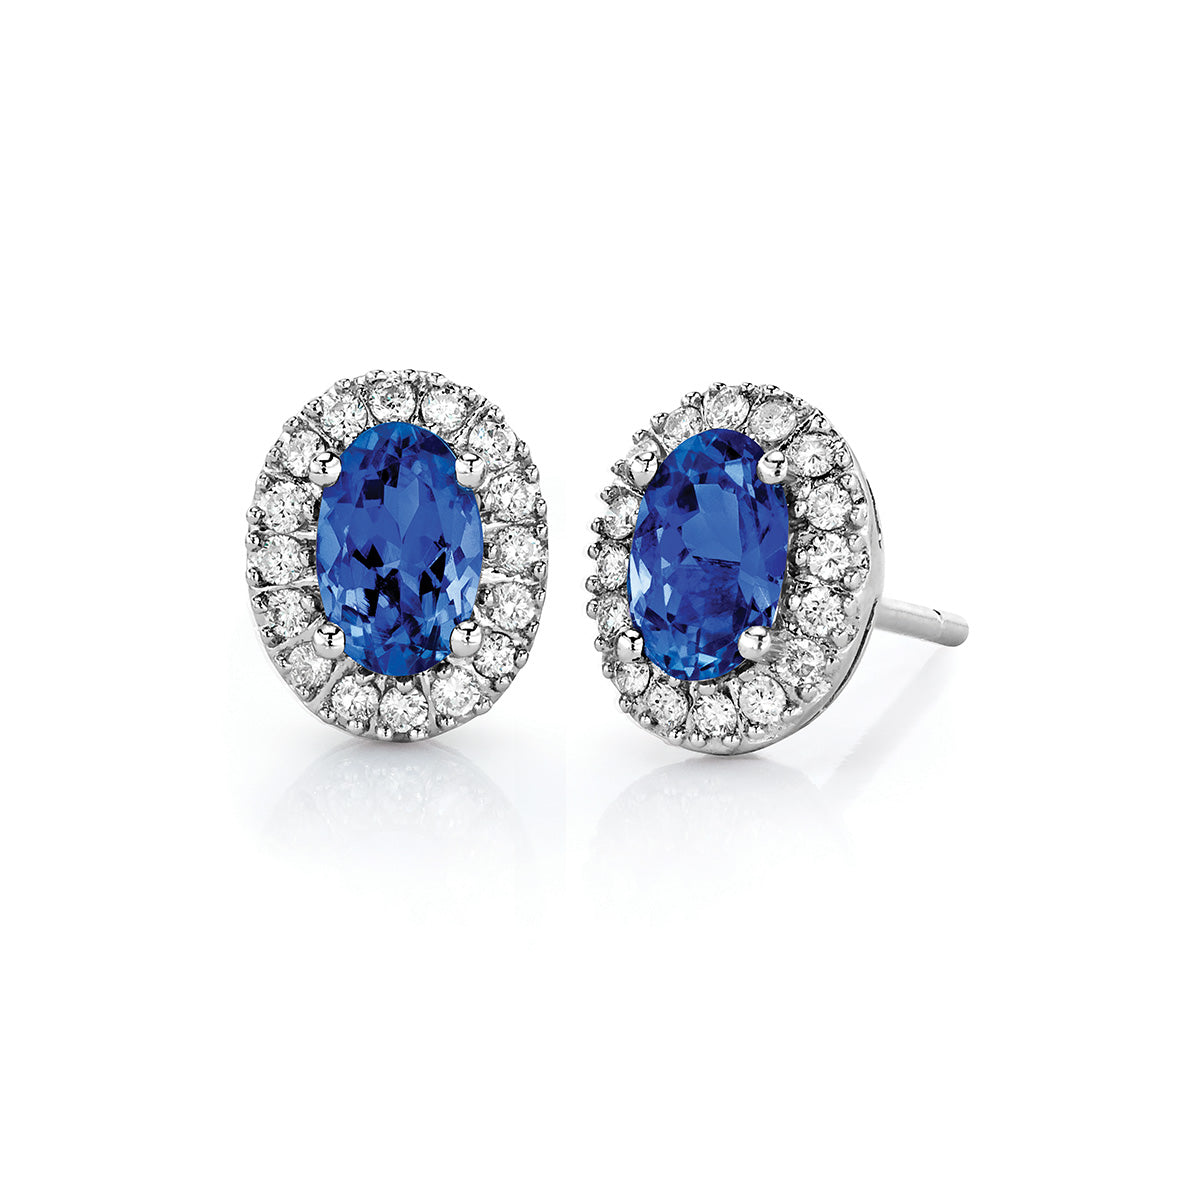 oval cut tanzanite diamond earrings sterling silver studs